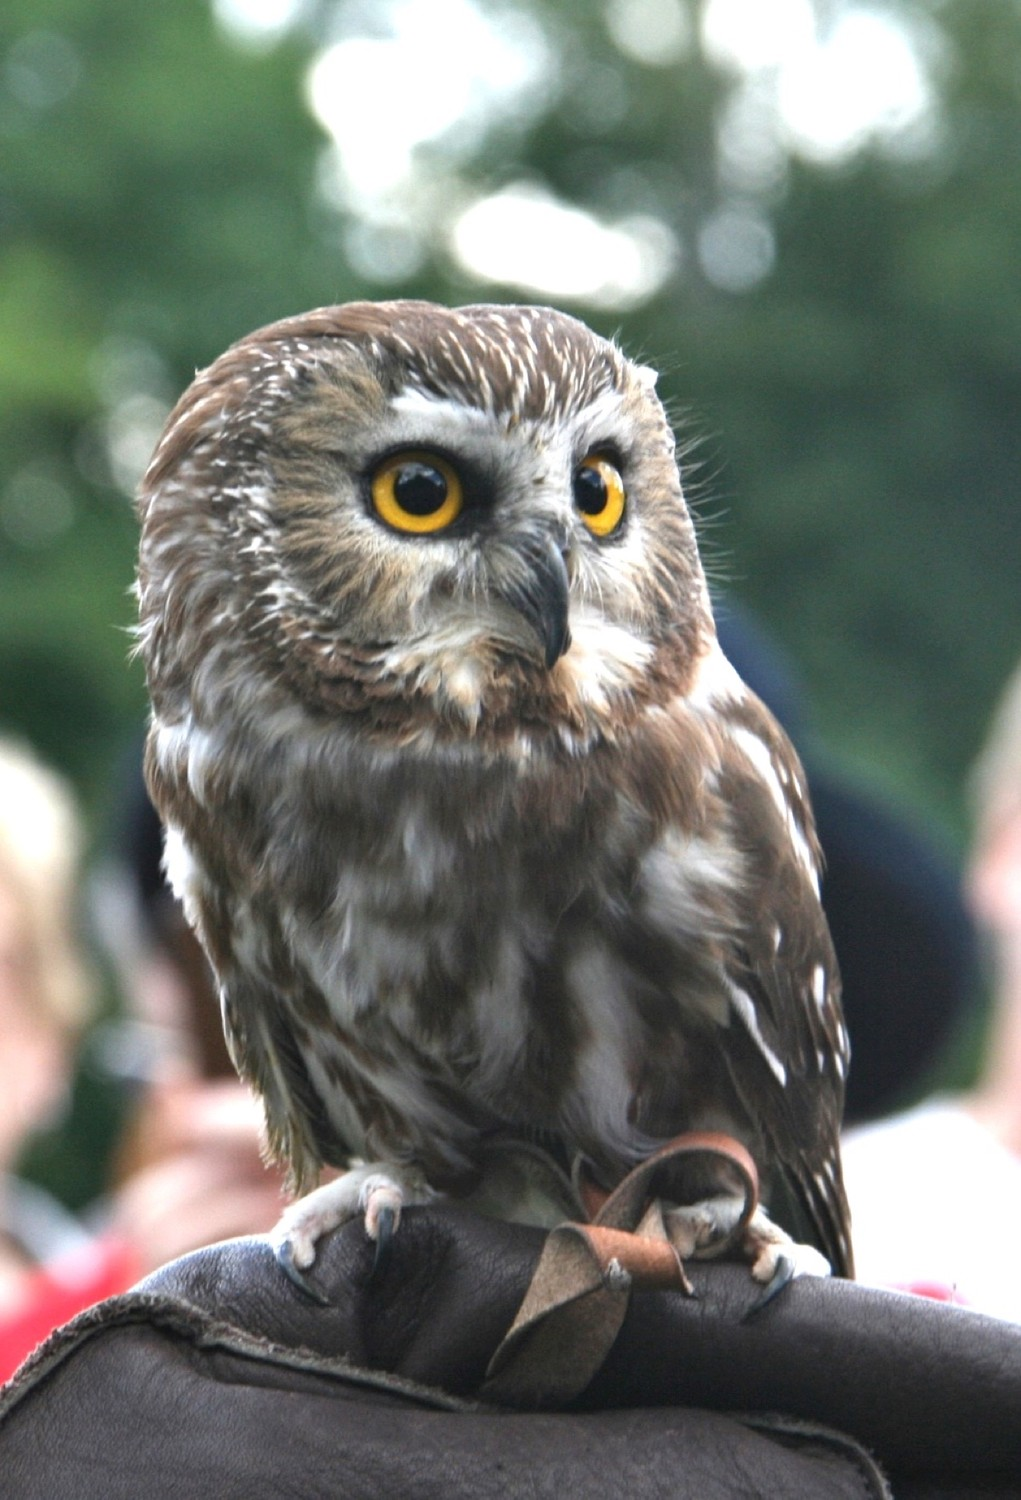 Audubon's Northern Saw-whet Owl, Pippin. Northern Saw-whet Owls are the smallest owl found in Rhode Island.